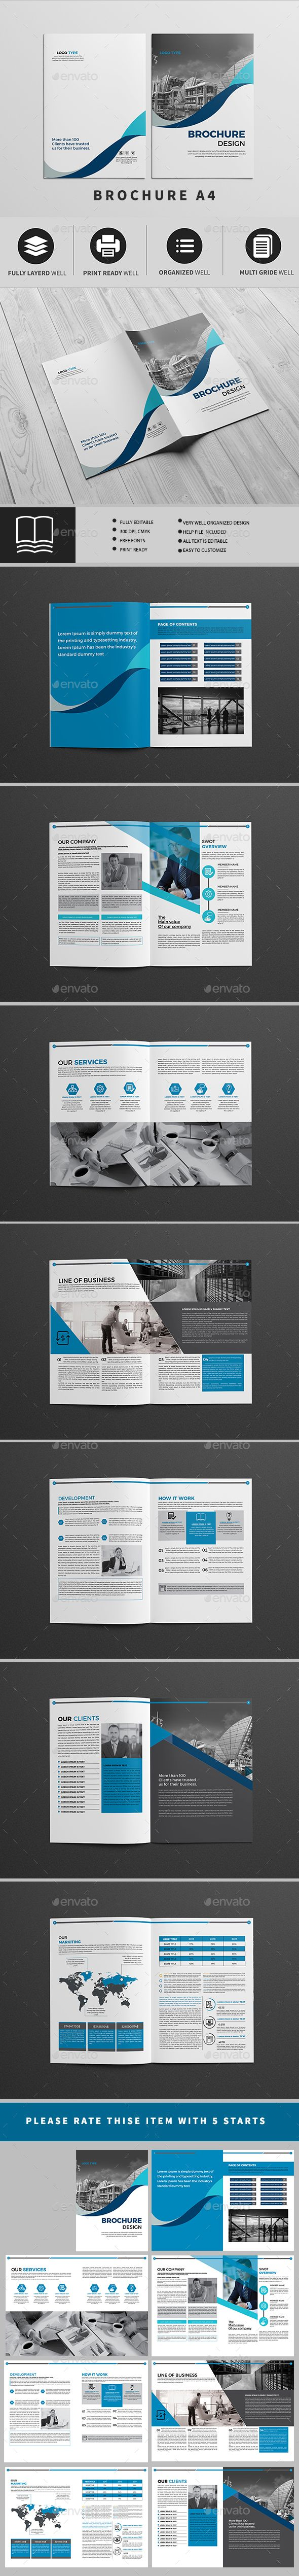 Corporate Business Brochure Template - #Corporate #Business #Brochure #Template #Print #Design. Download here: https://graphicriver.net/item/brochure-template/19486897?ref=yinkira